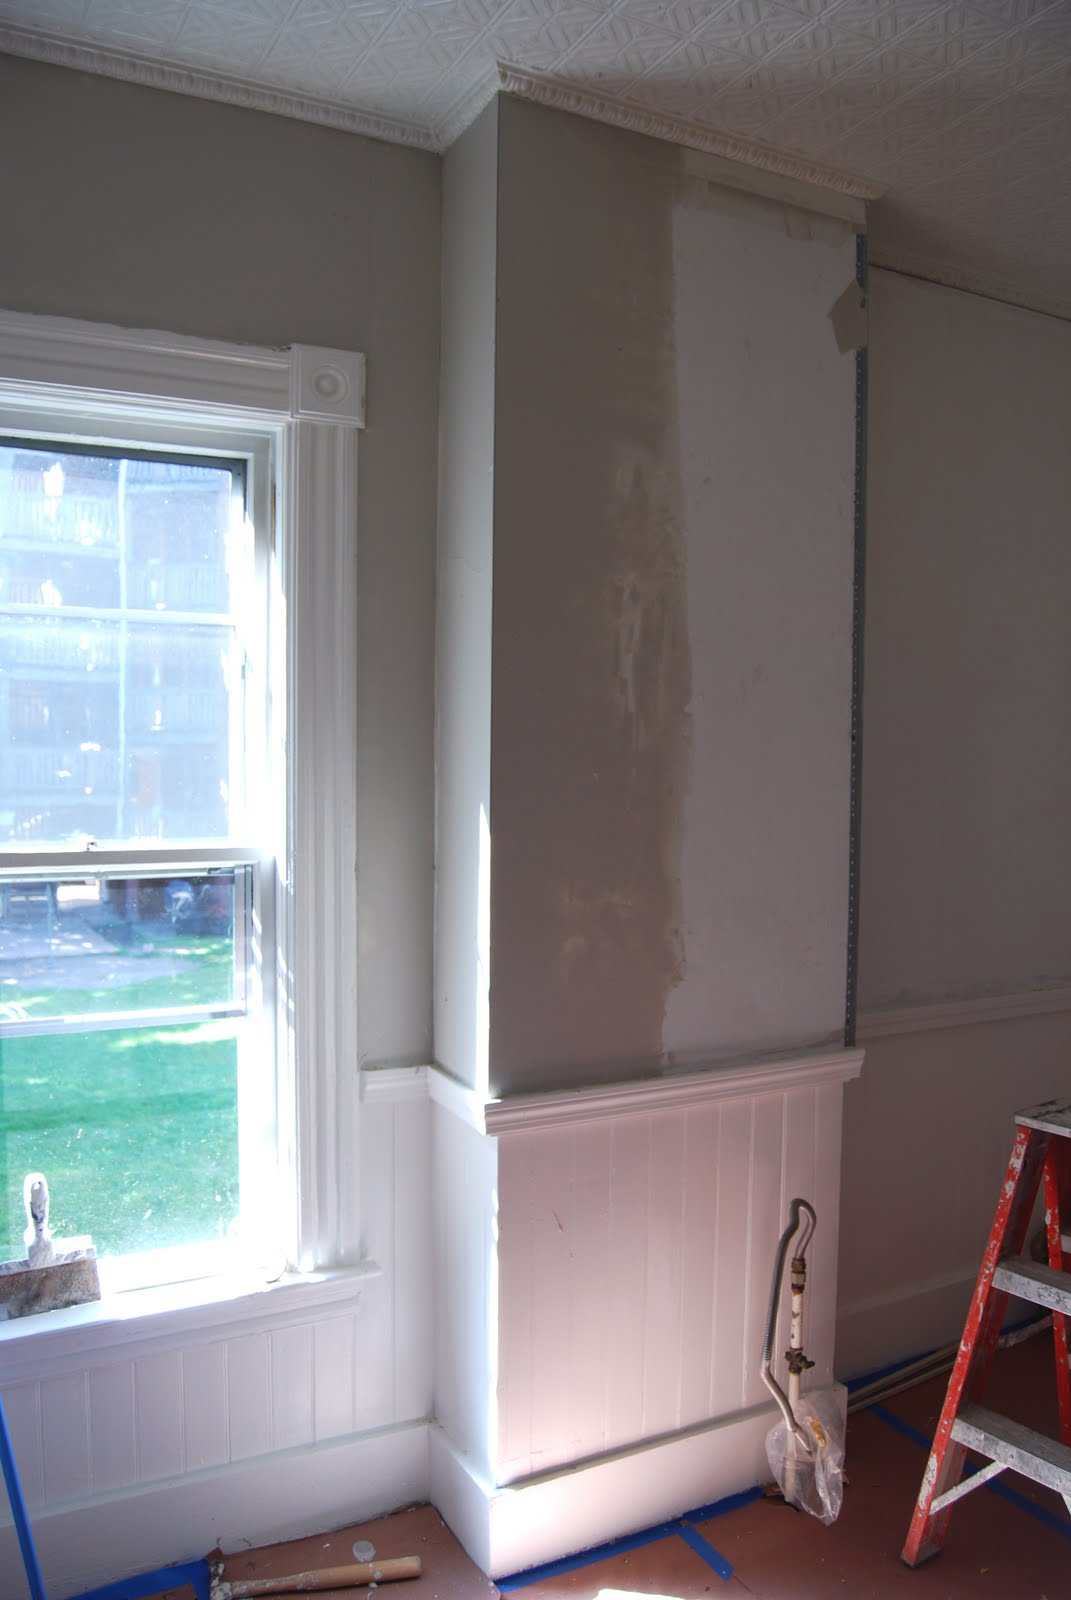 Wallpaper Removal vs. Skim Coating with Wallboard Compound